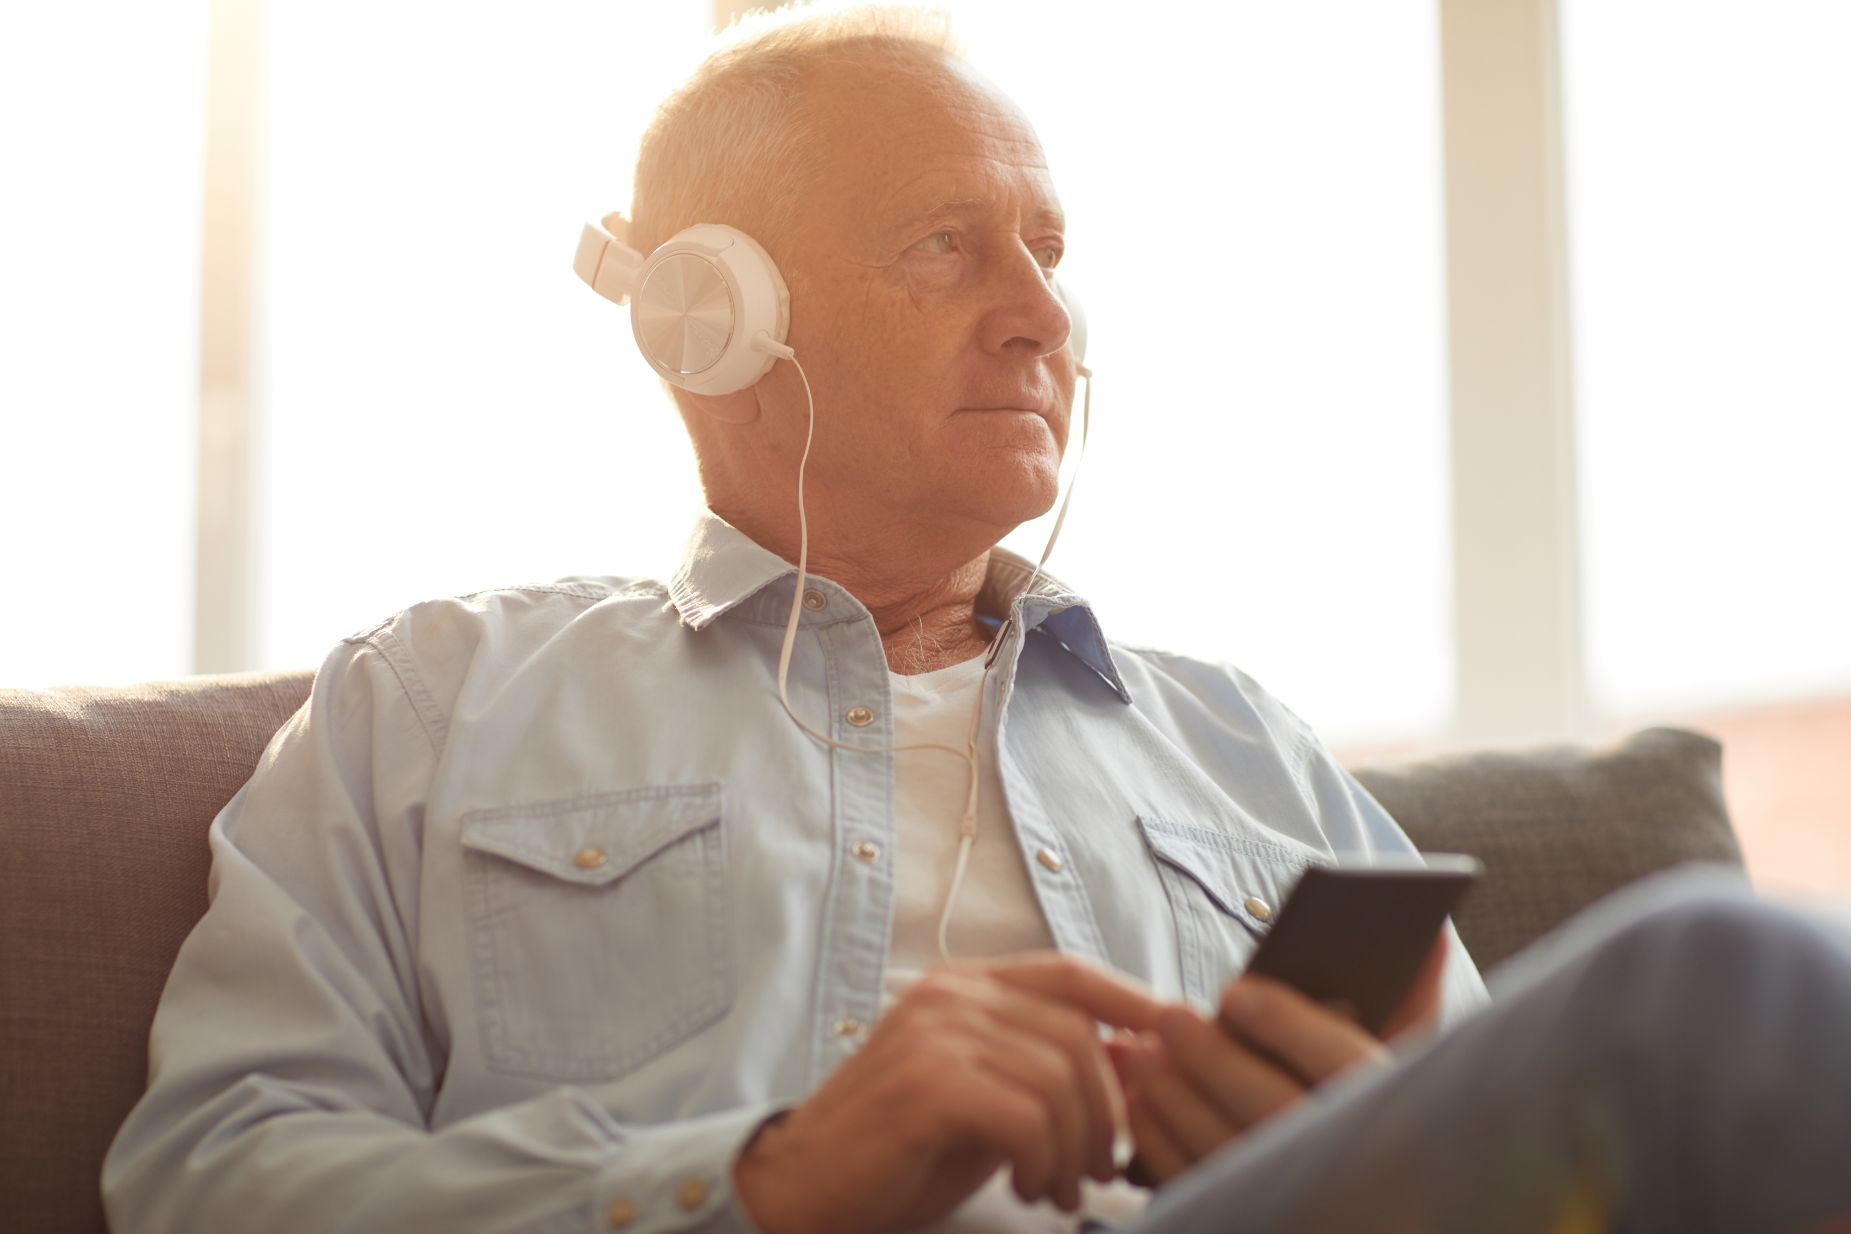 Top 10 AudioBook Apps for Android in 2020